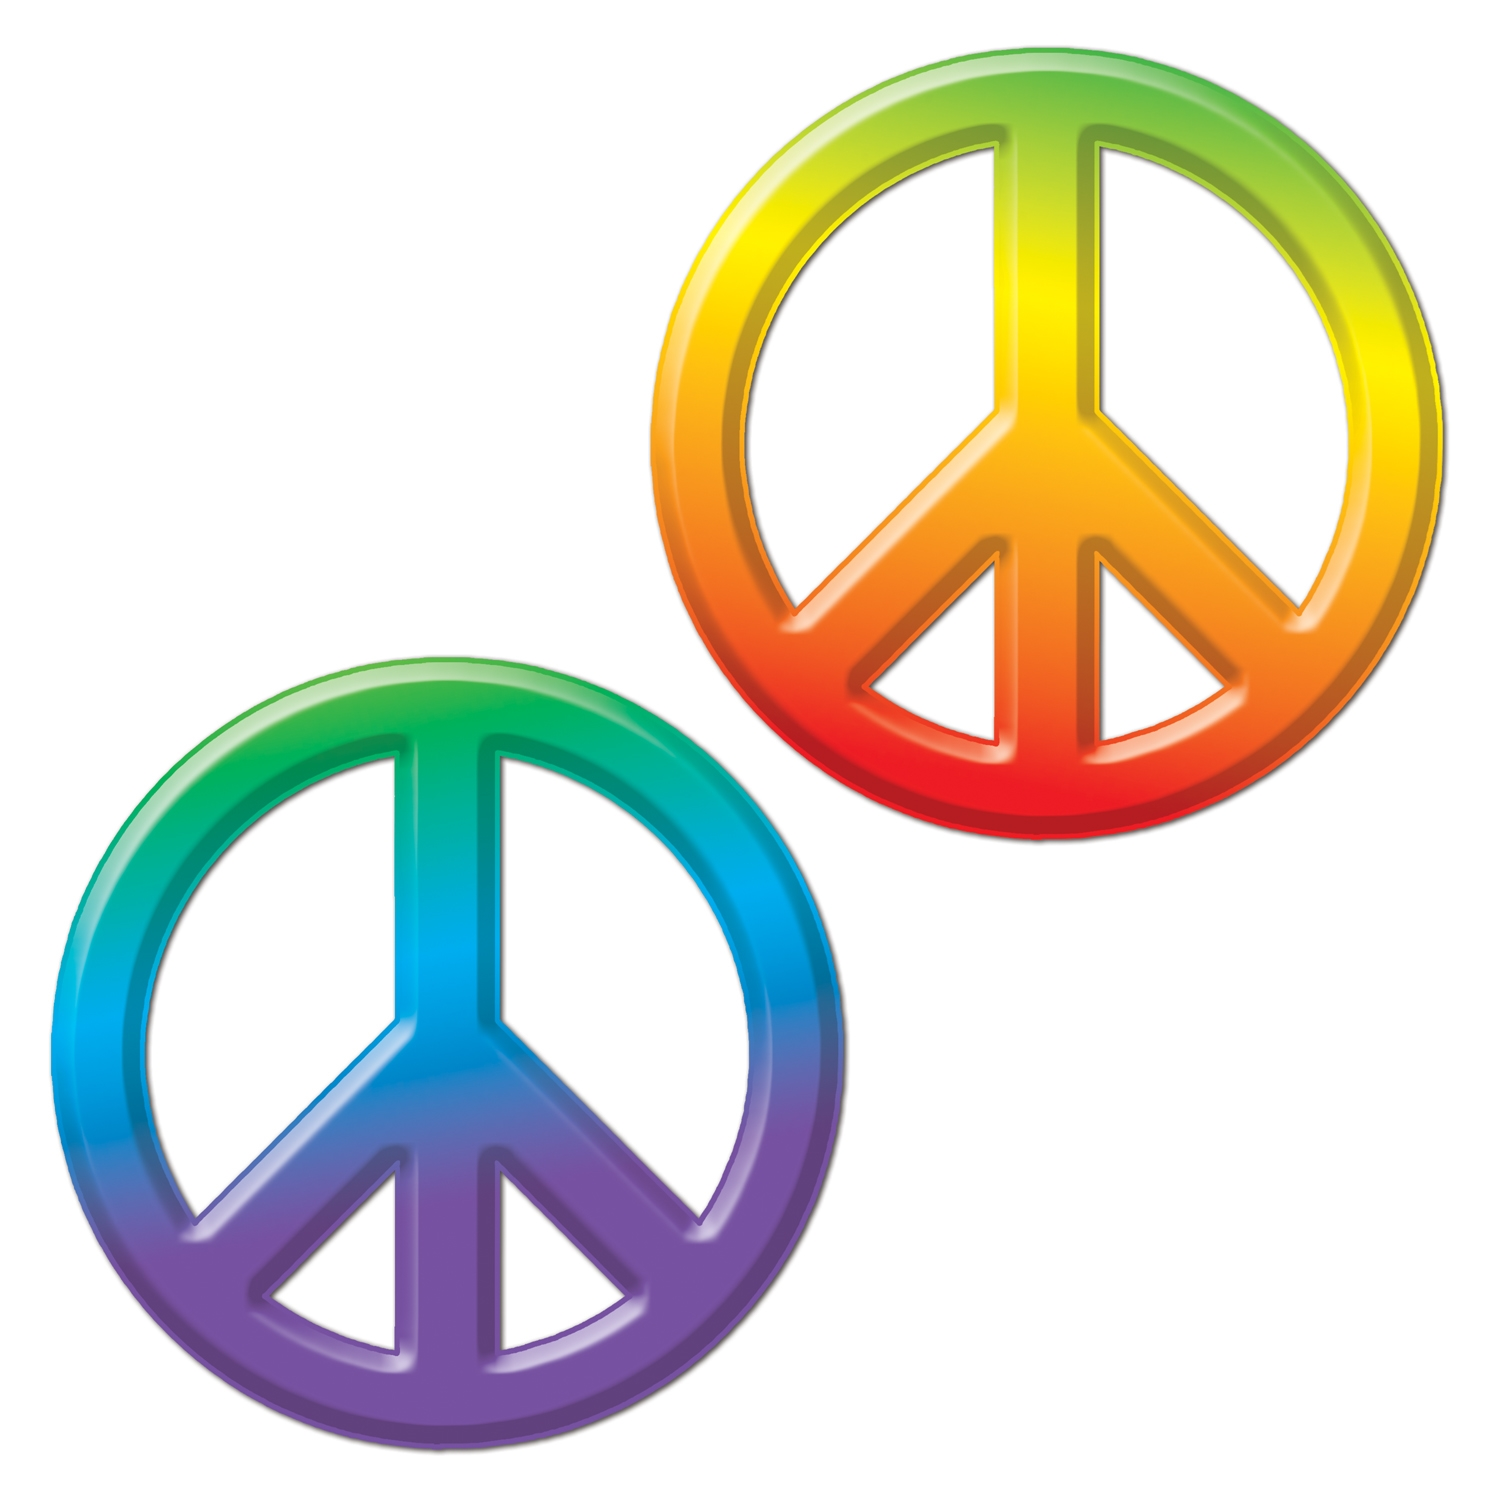 Plastic Peace Sign (Pack of 24) Plastic Peace Sign, 1960s Decor, Wholesale party supplies, Cheap peace signs, Groovy decorations, Cheap decor, Retro supplies, Tie-Dyed